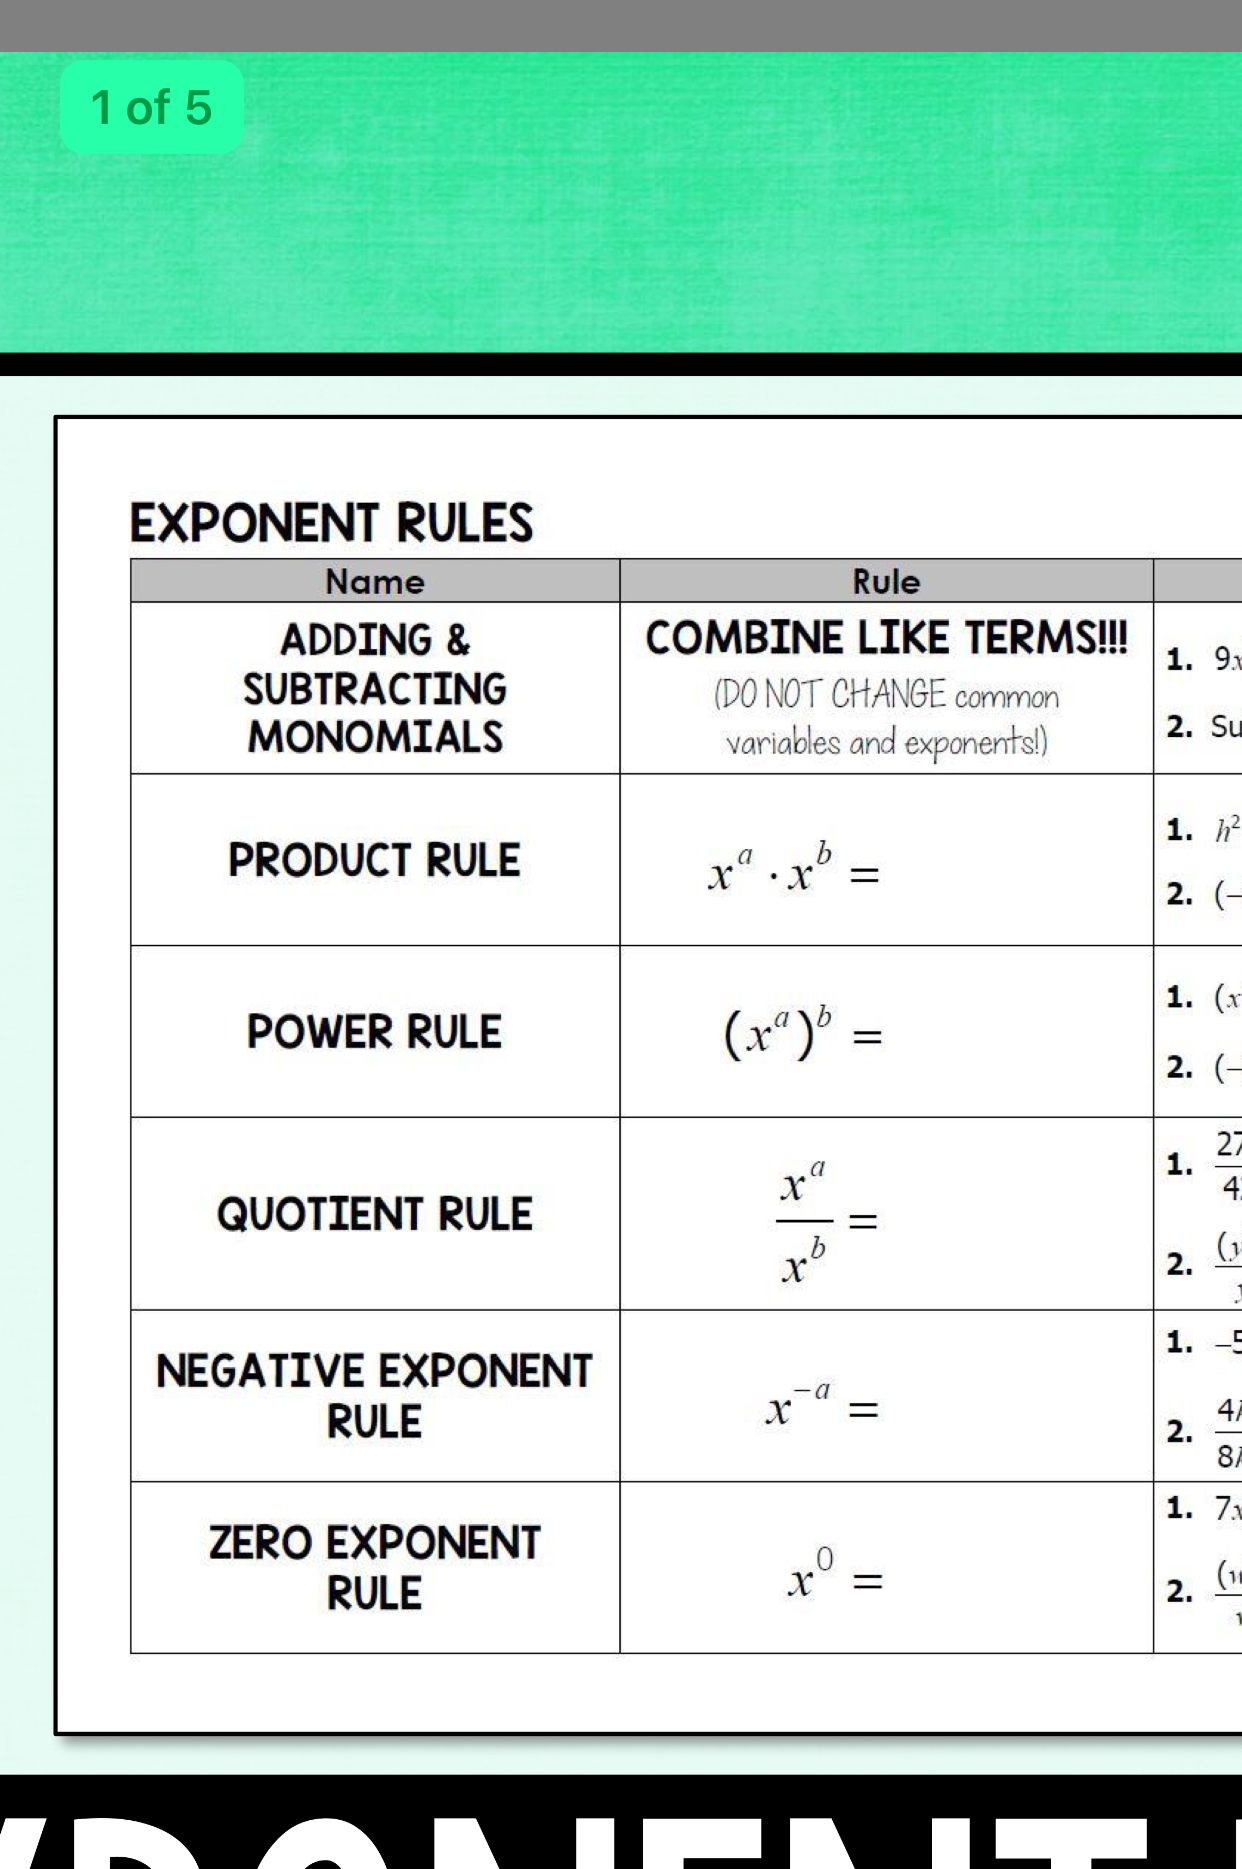 Pin by Lisa Blatt on Math projects Negative exponent